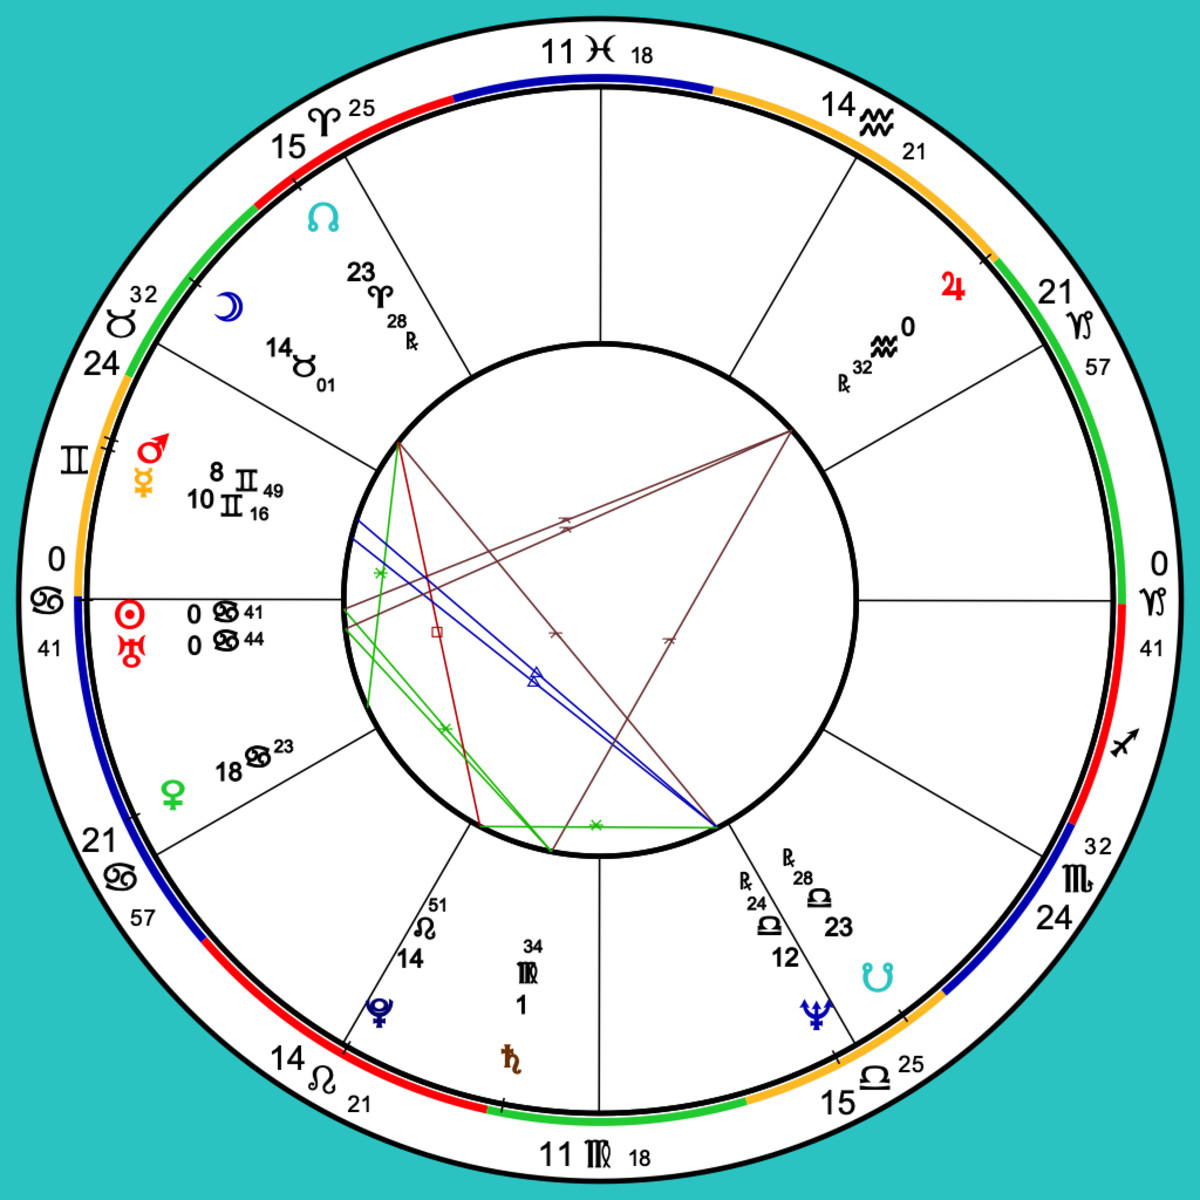 "Warren was born June 22, 1949 at Oklahoma City, USA. The birth time is not public so the chart used the time of sunrise as a default. At the two o'clock position is the Jupiter in Aquarius that is her natal chart's ""bucket handle"" and apex of her Yod"